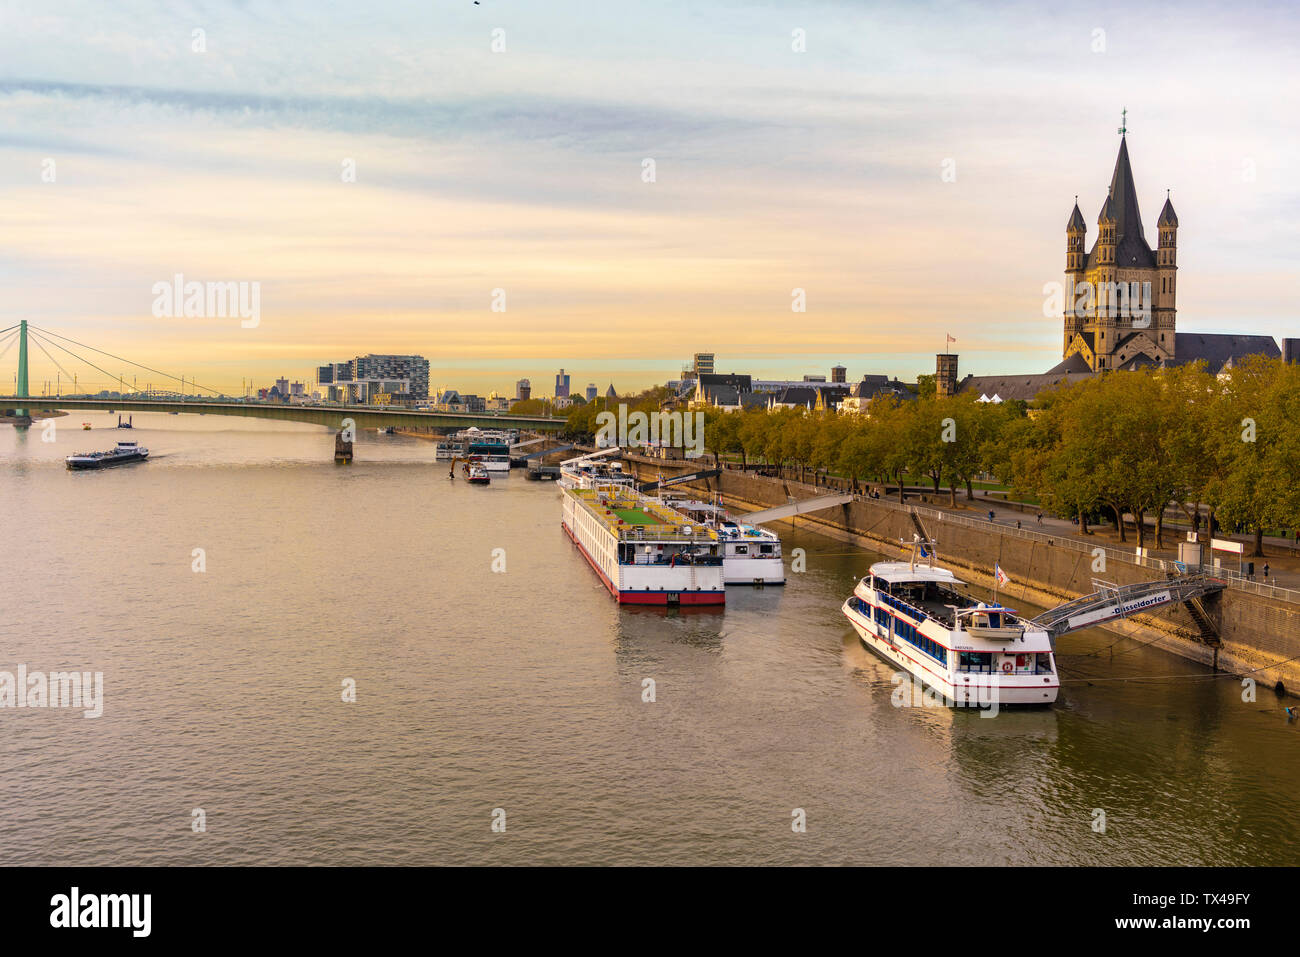 Germany, Cologne, church Great St Martin at River Rhine - Stock Image